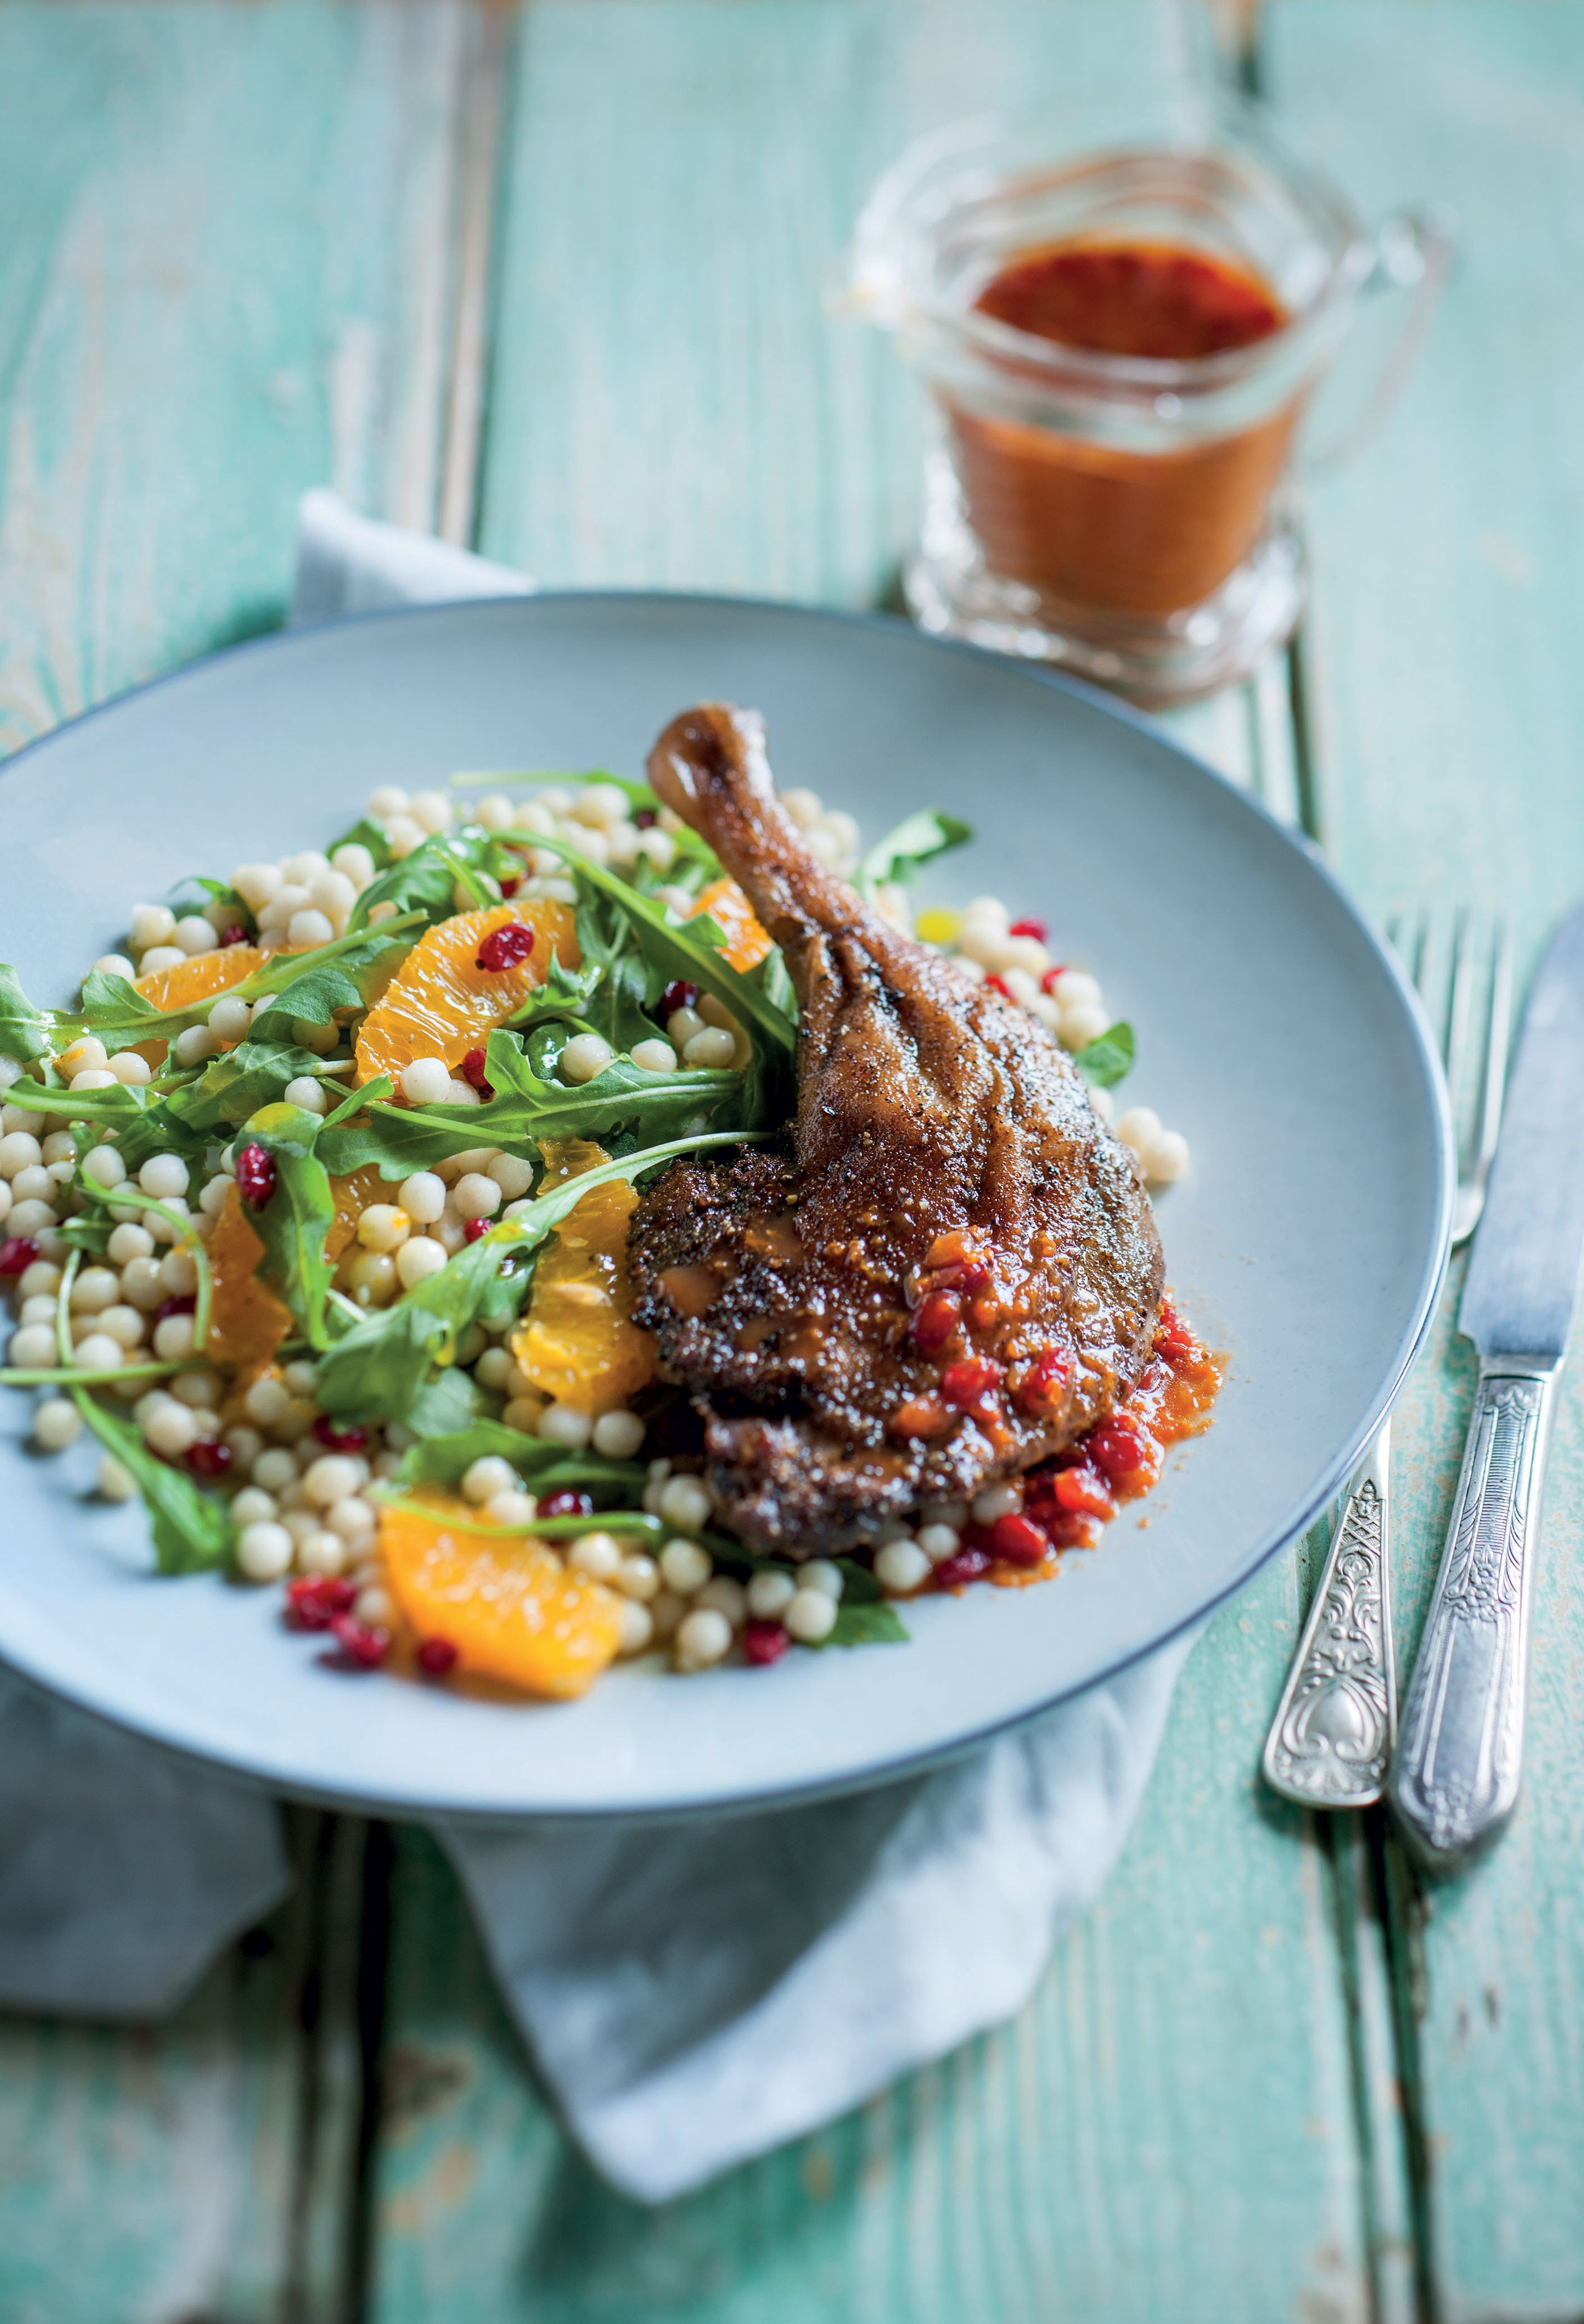 Tangelo spiced duck and pearl cous cous salad